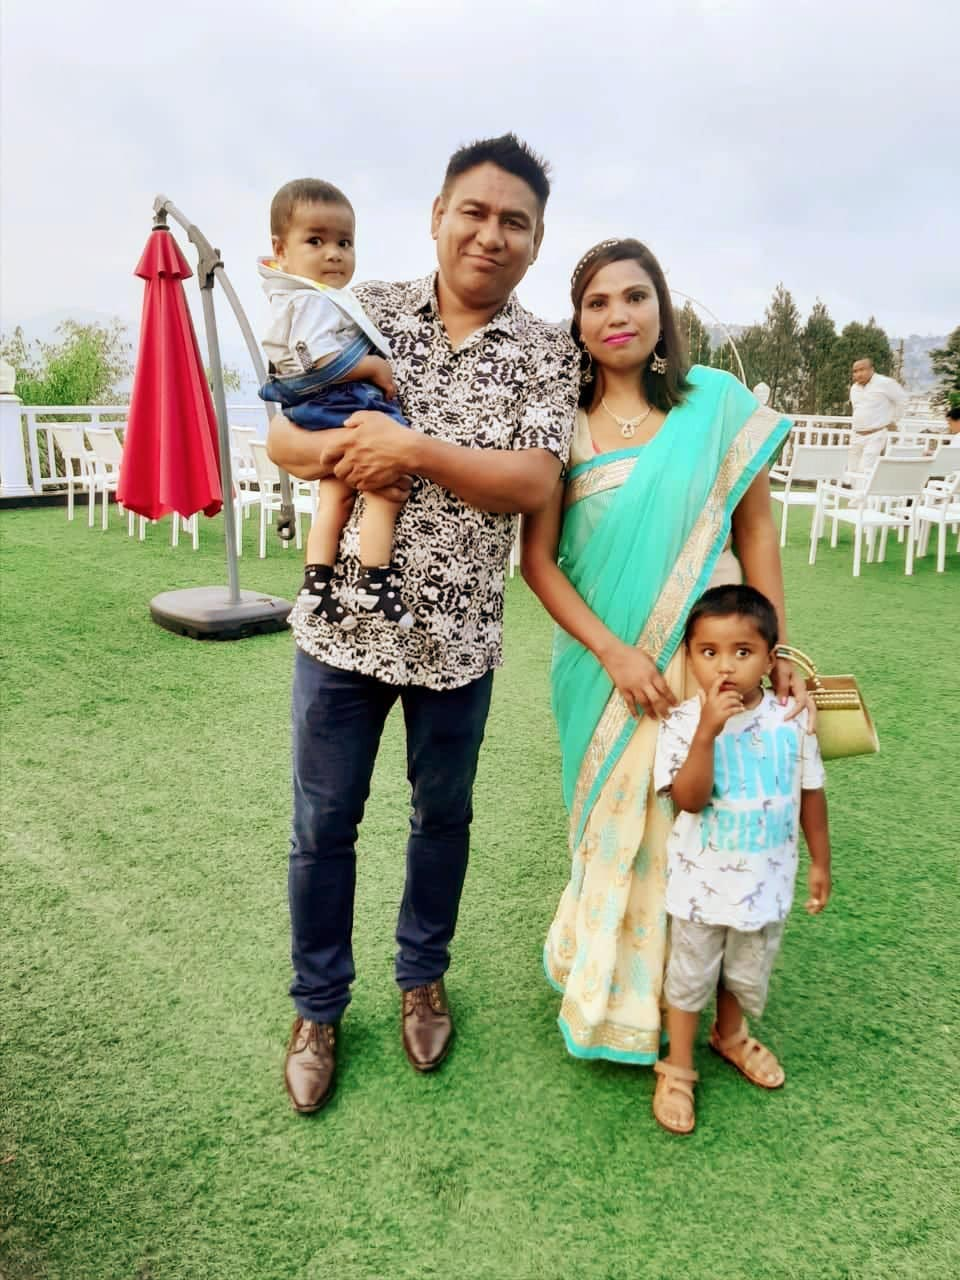 Home parents Gopal and Kabita have been married for five years and have two sons: Gabriel, 4 and Kelvin, 1.